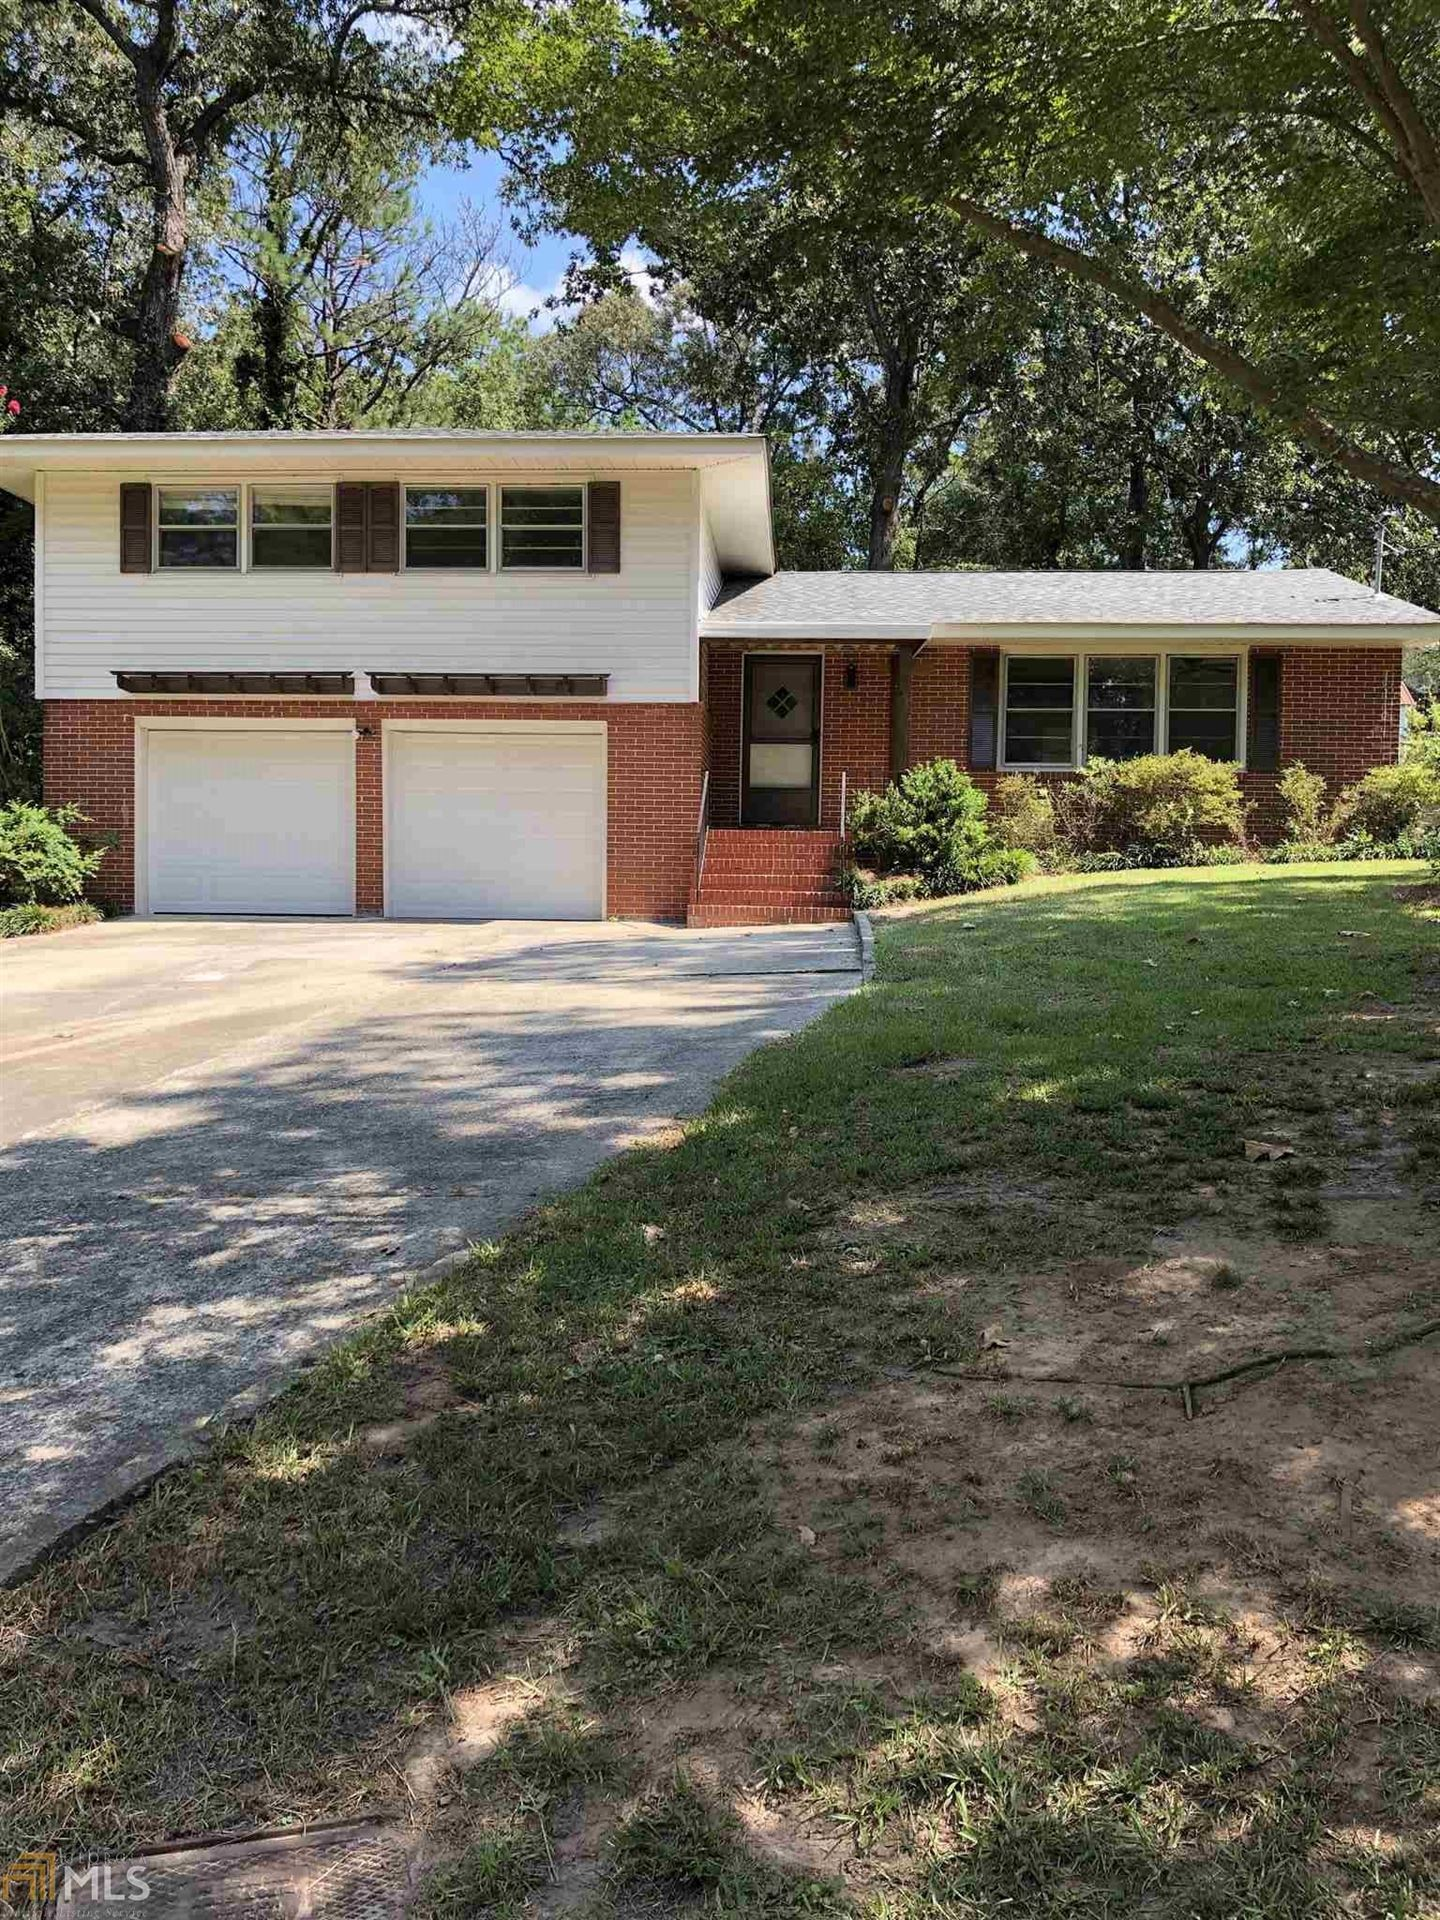 406 Lakeshore, Warner Robins, GA 31088 - MLS#: 8854780